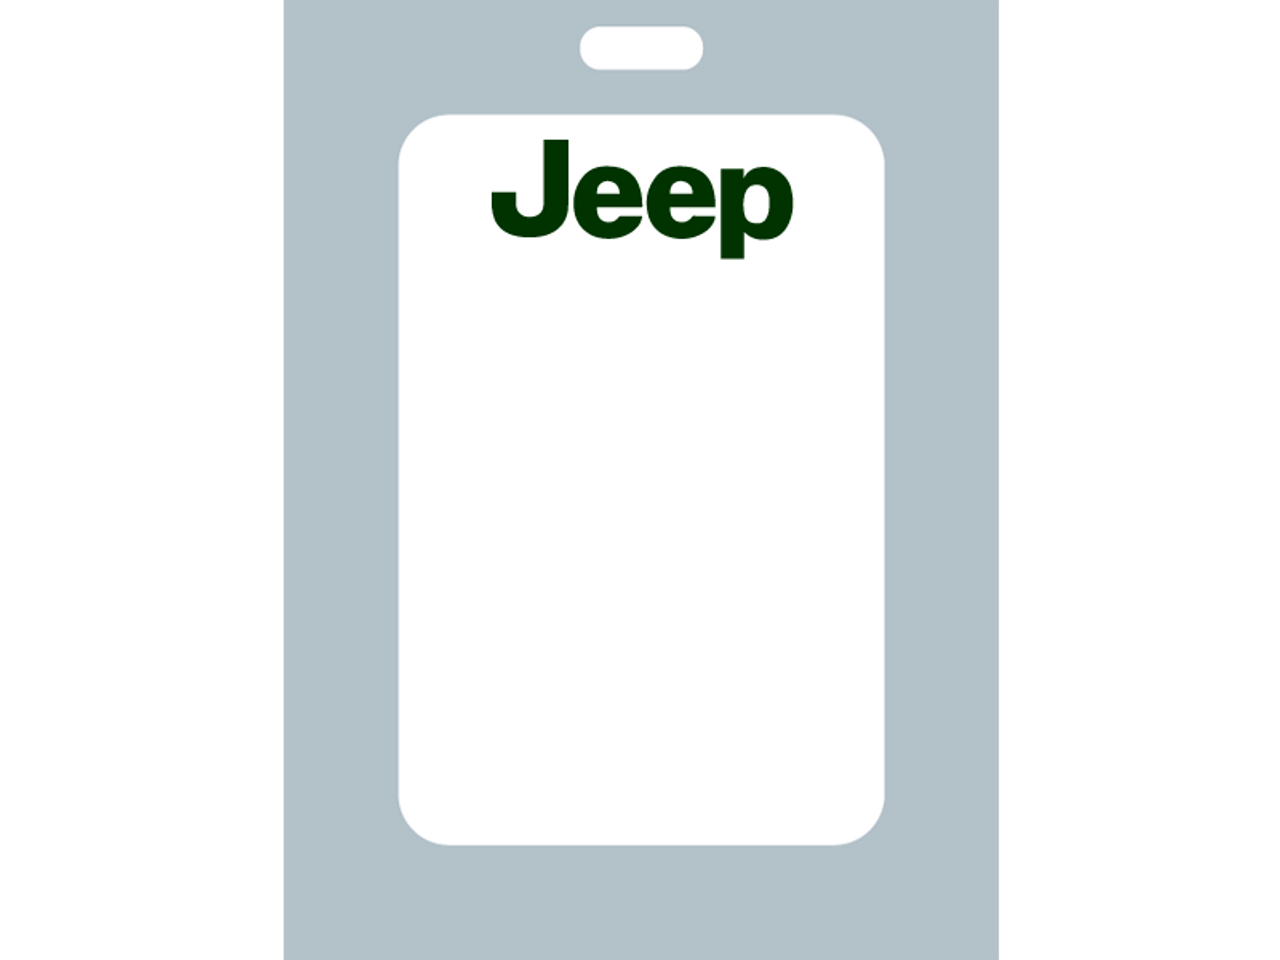 Jeep Zebra Oil Change Stickers on white material with a low-tac adhesive make sure your customers know where to return for their next oil change service. The low-tac adhesive keeps residue from building up and creating difficulty removing from the windshield. Your customers will love these labels.